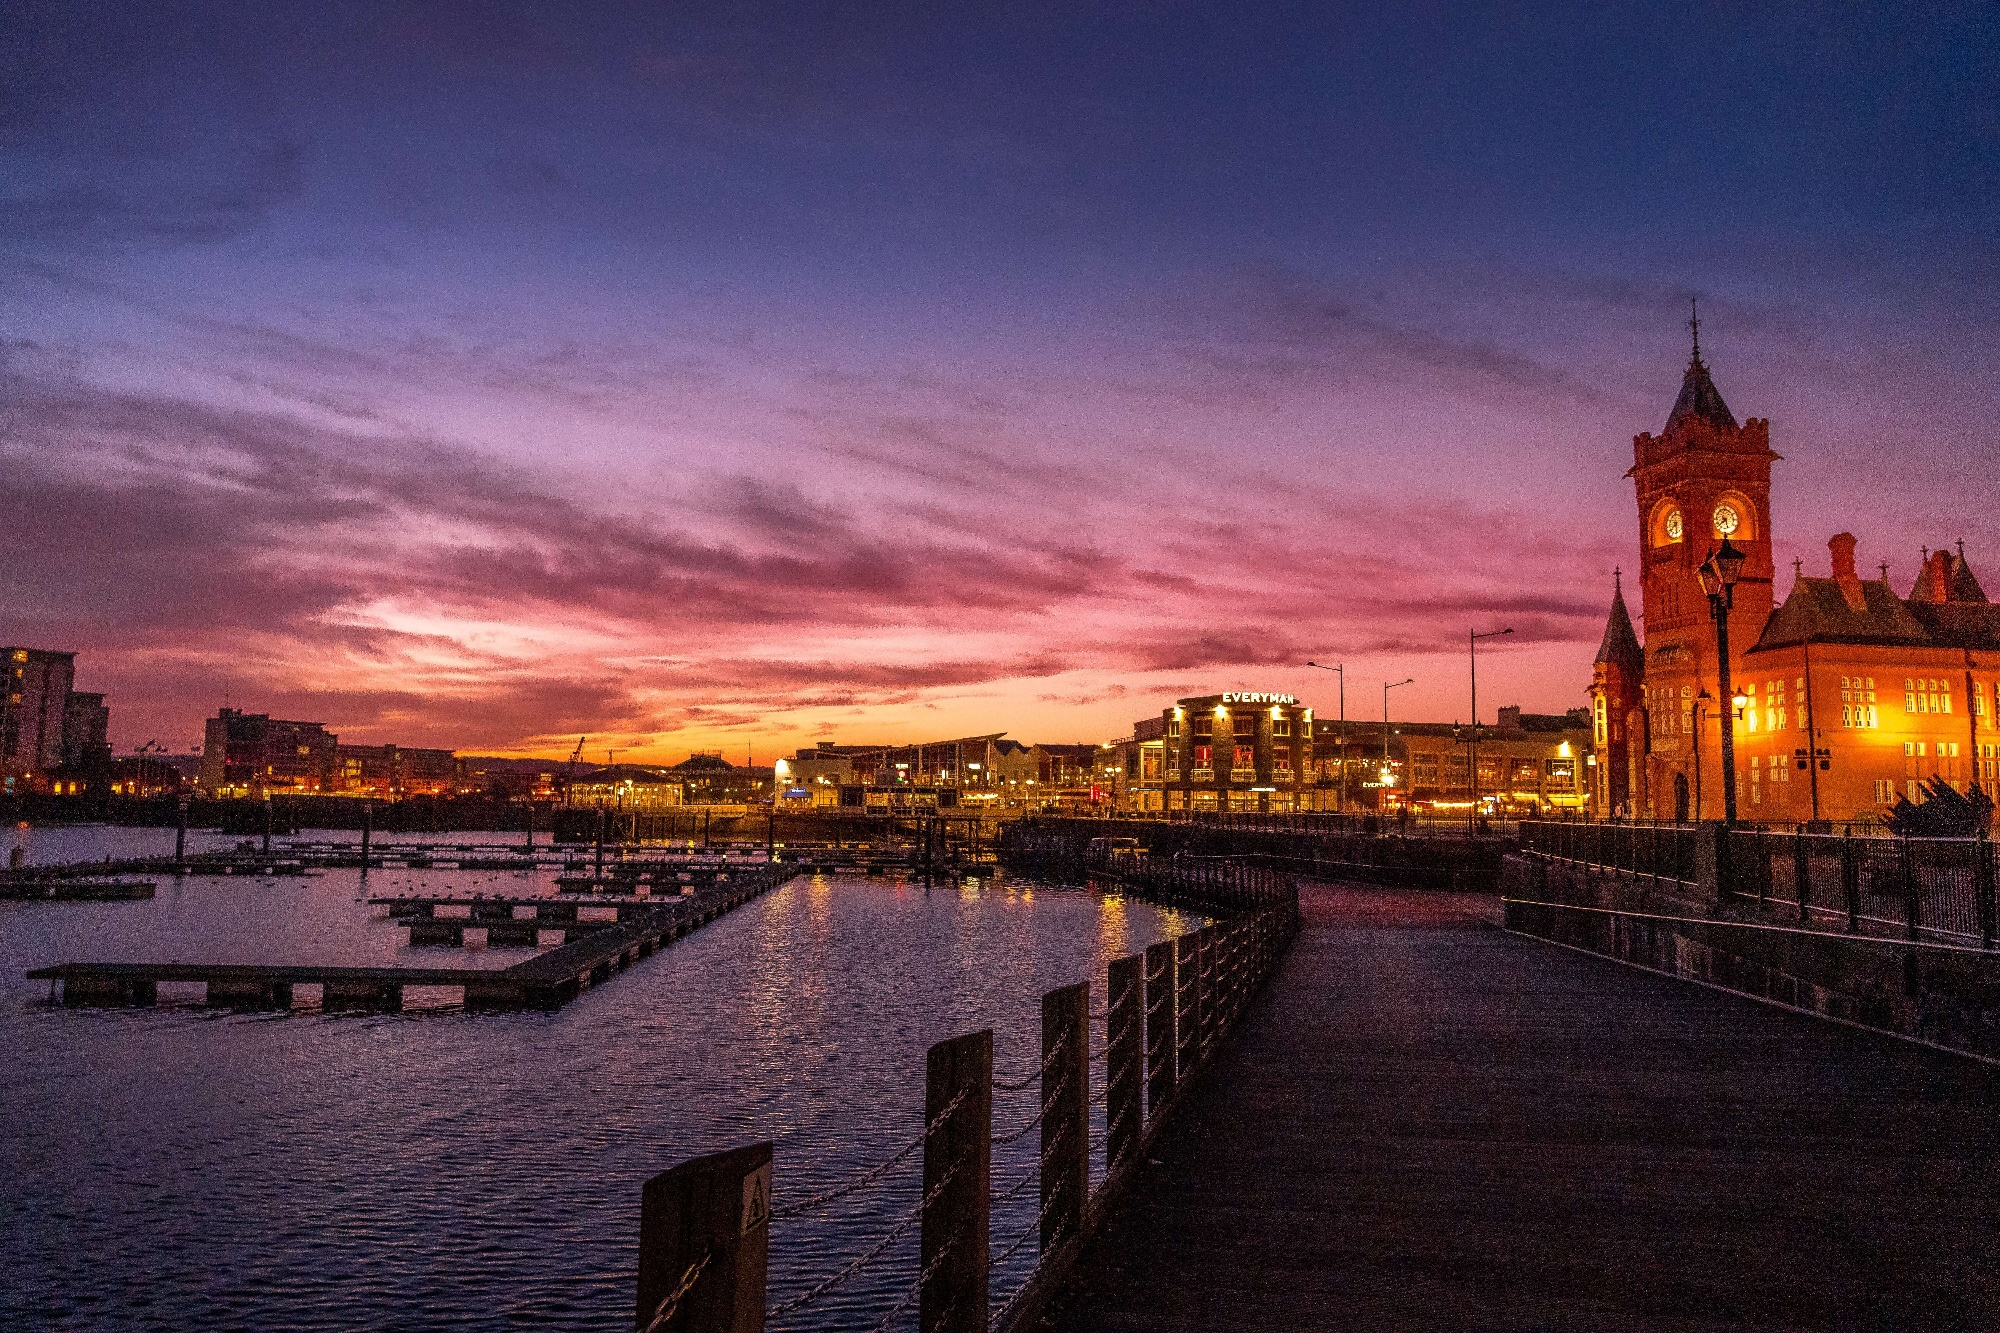 by Nick Fewings - Cardiff bay